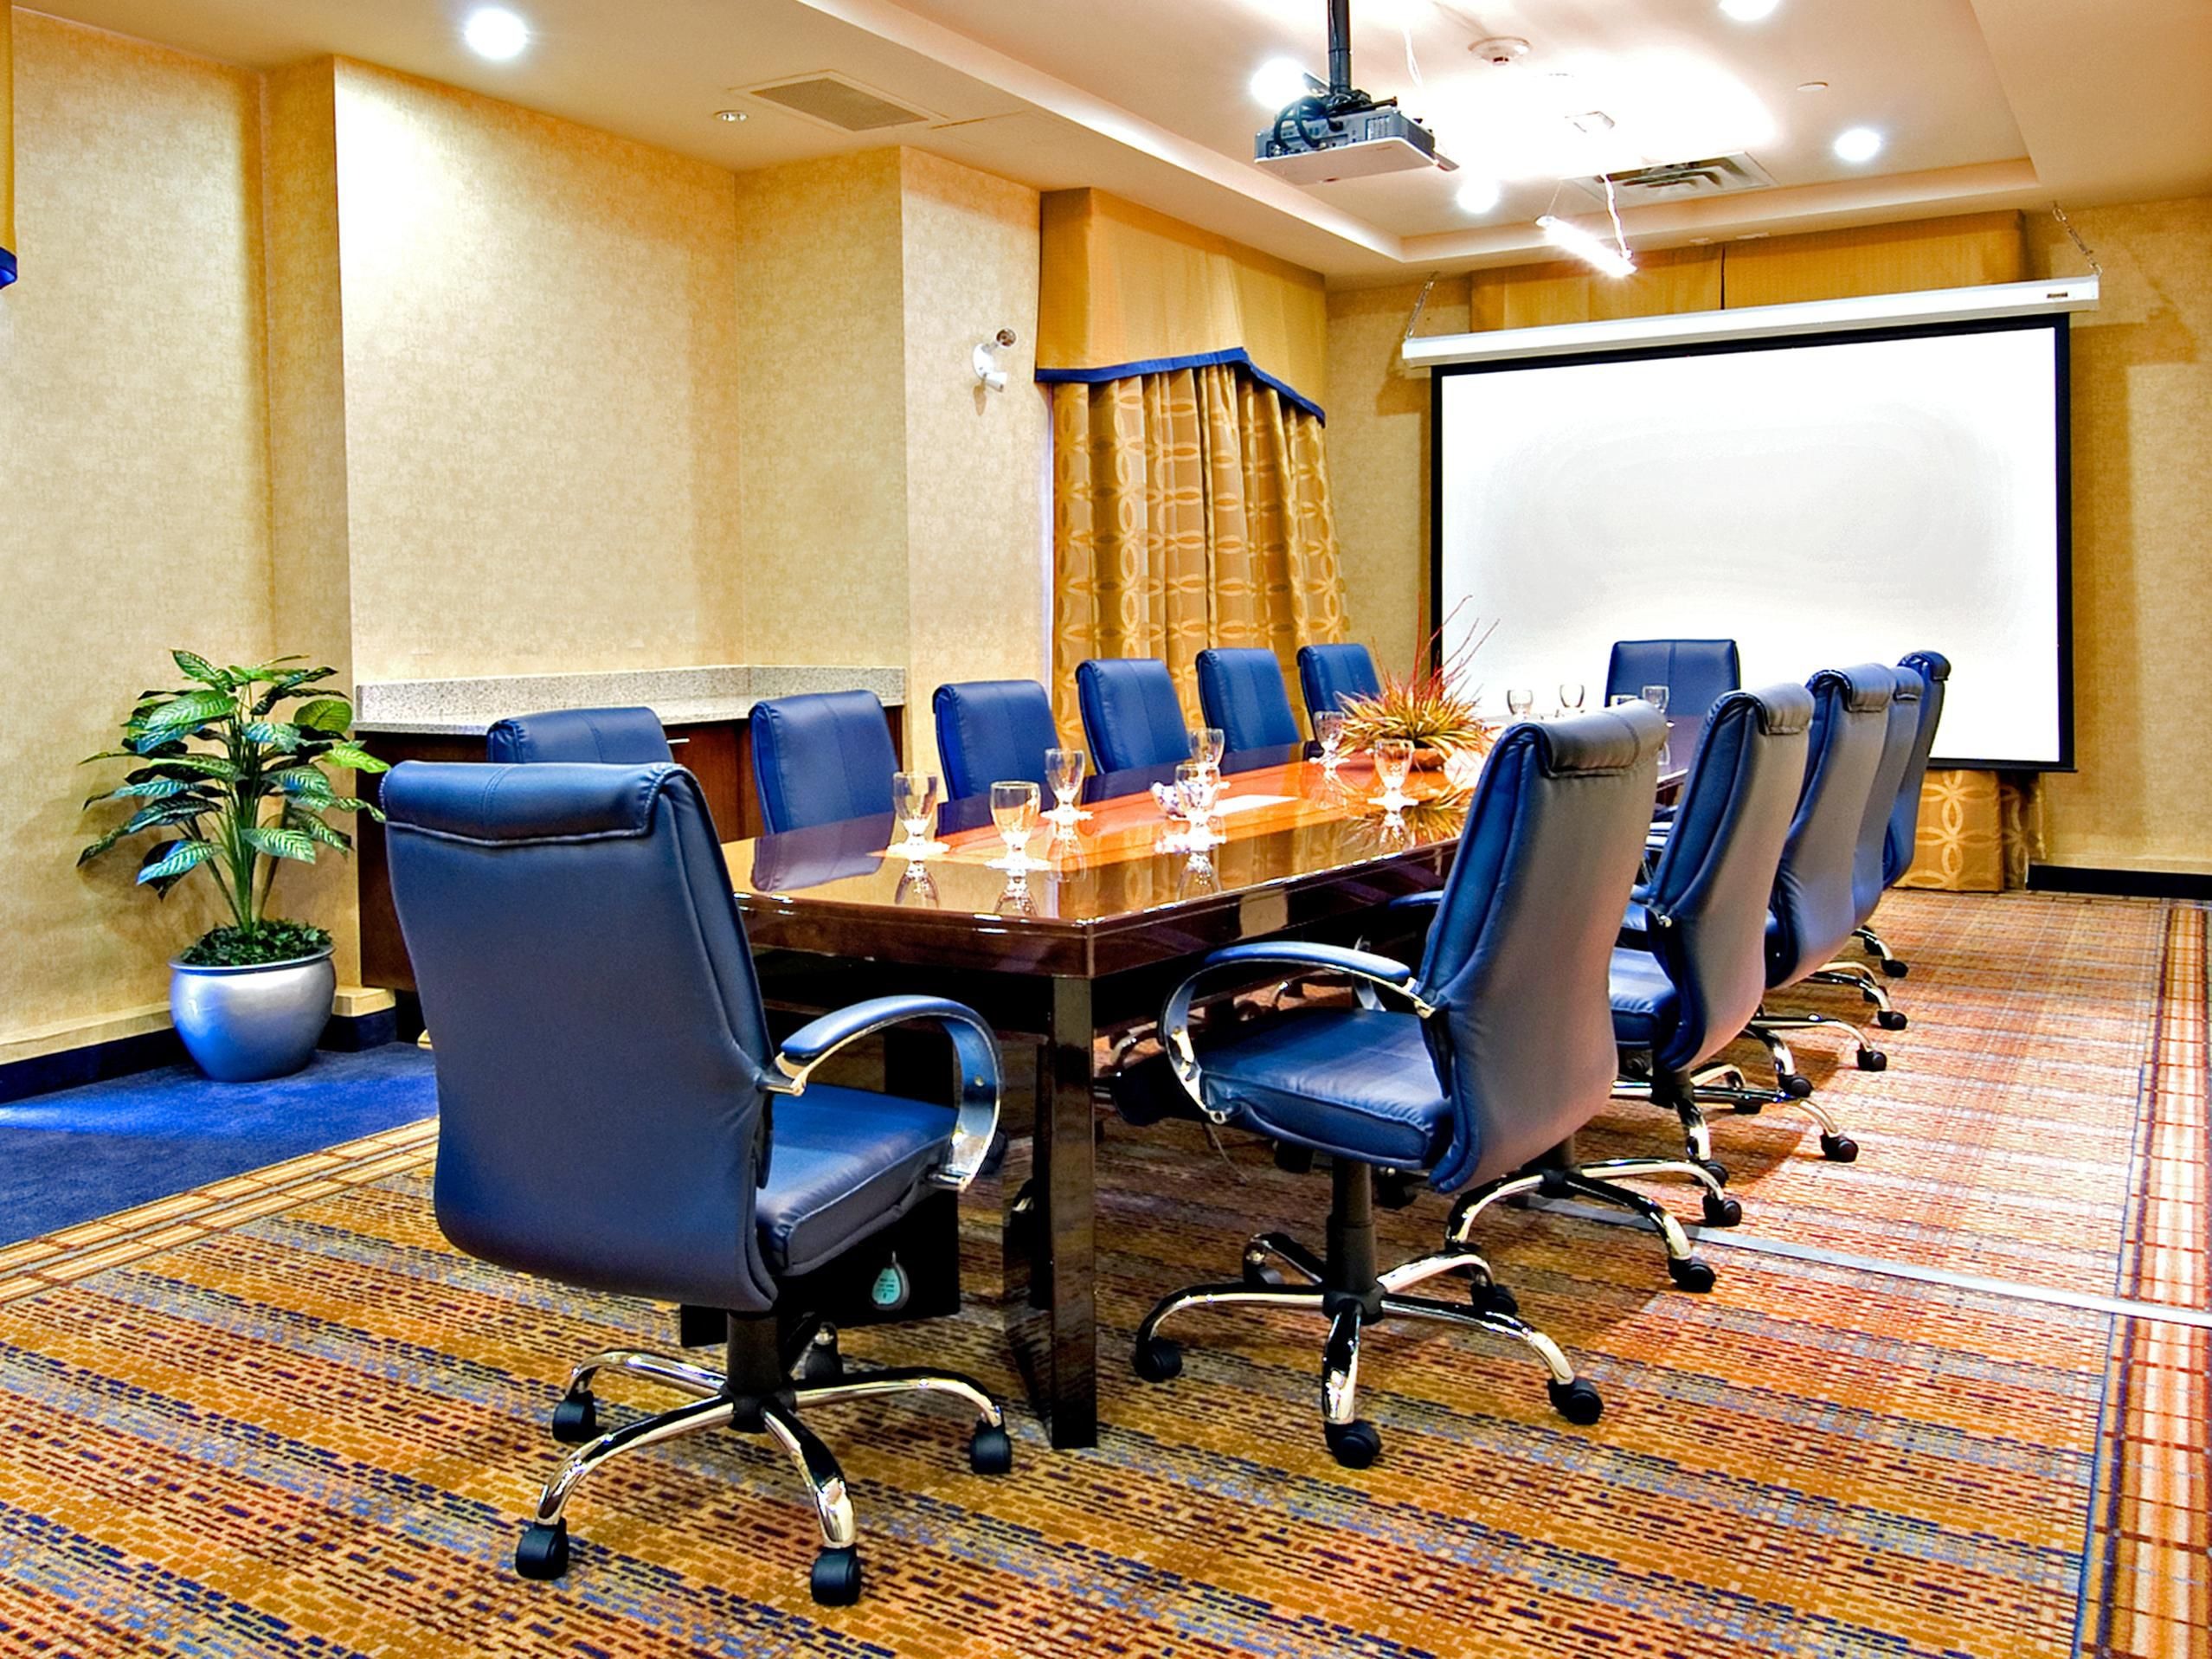 Boardroom High Tech all inclusive AV equipped